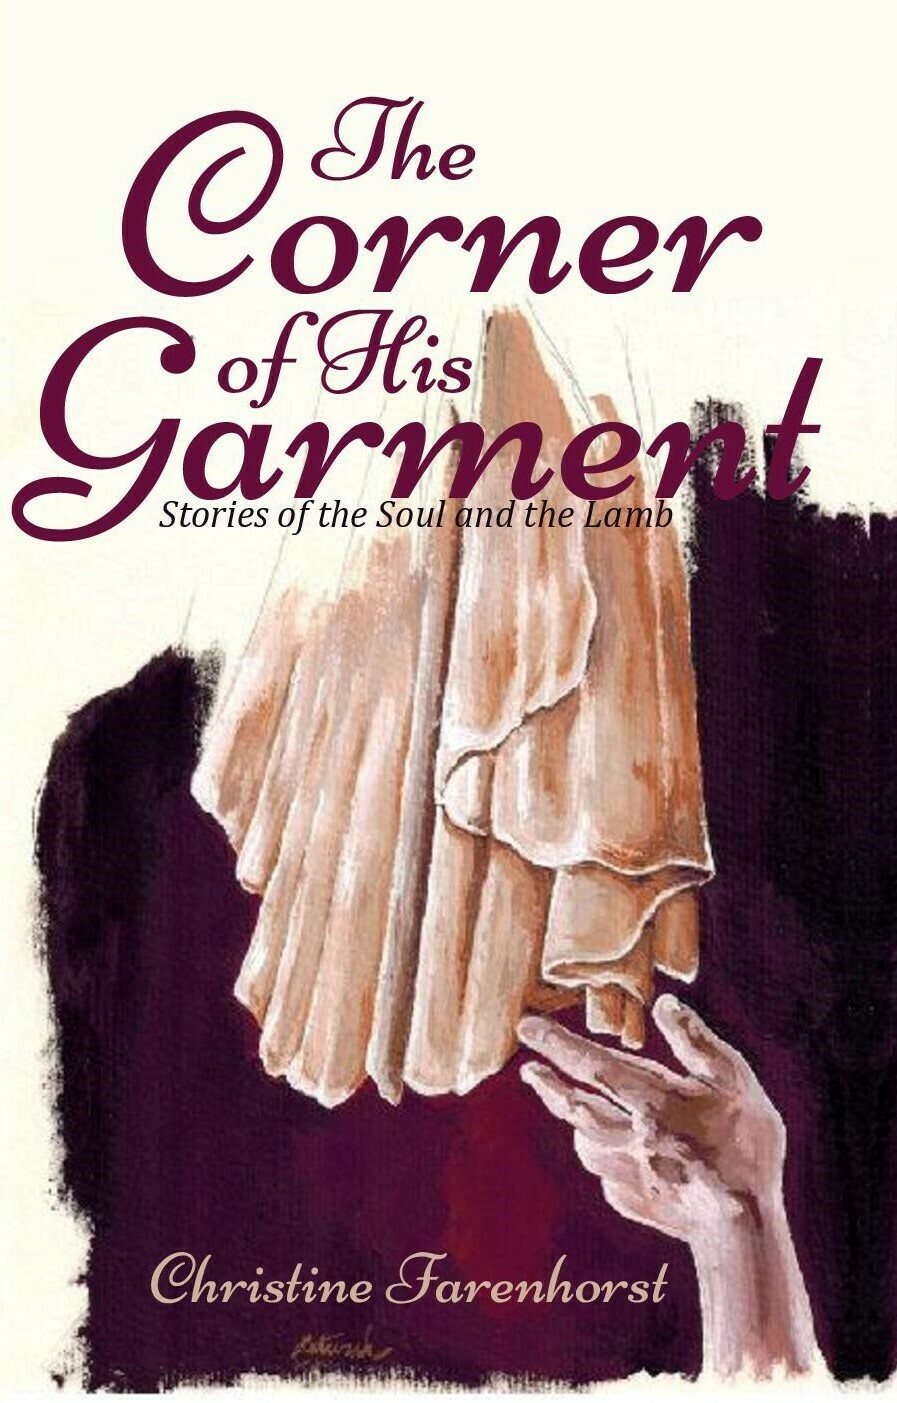 The Corner of His Garment: Stories of the Soul and the Lamb by Christine Farenhorst (soft-cover & e-book